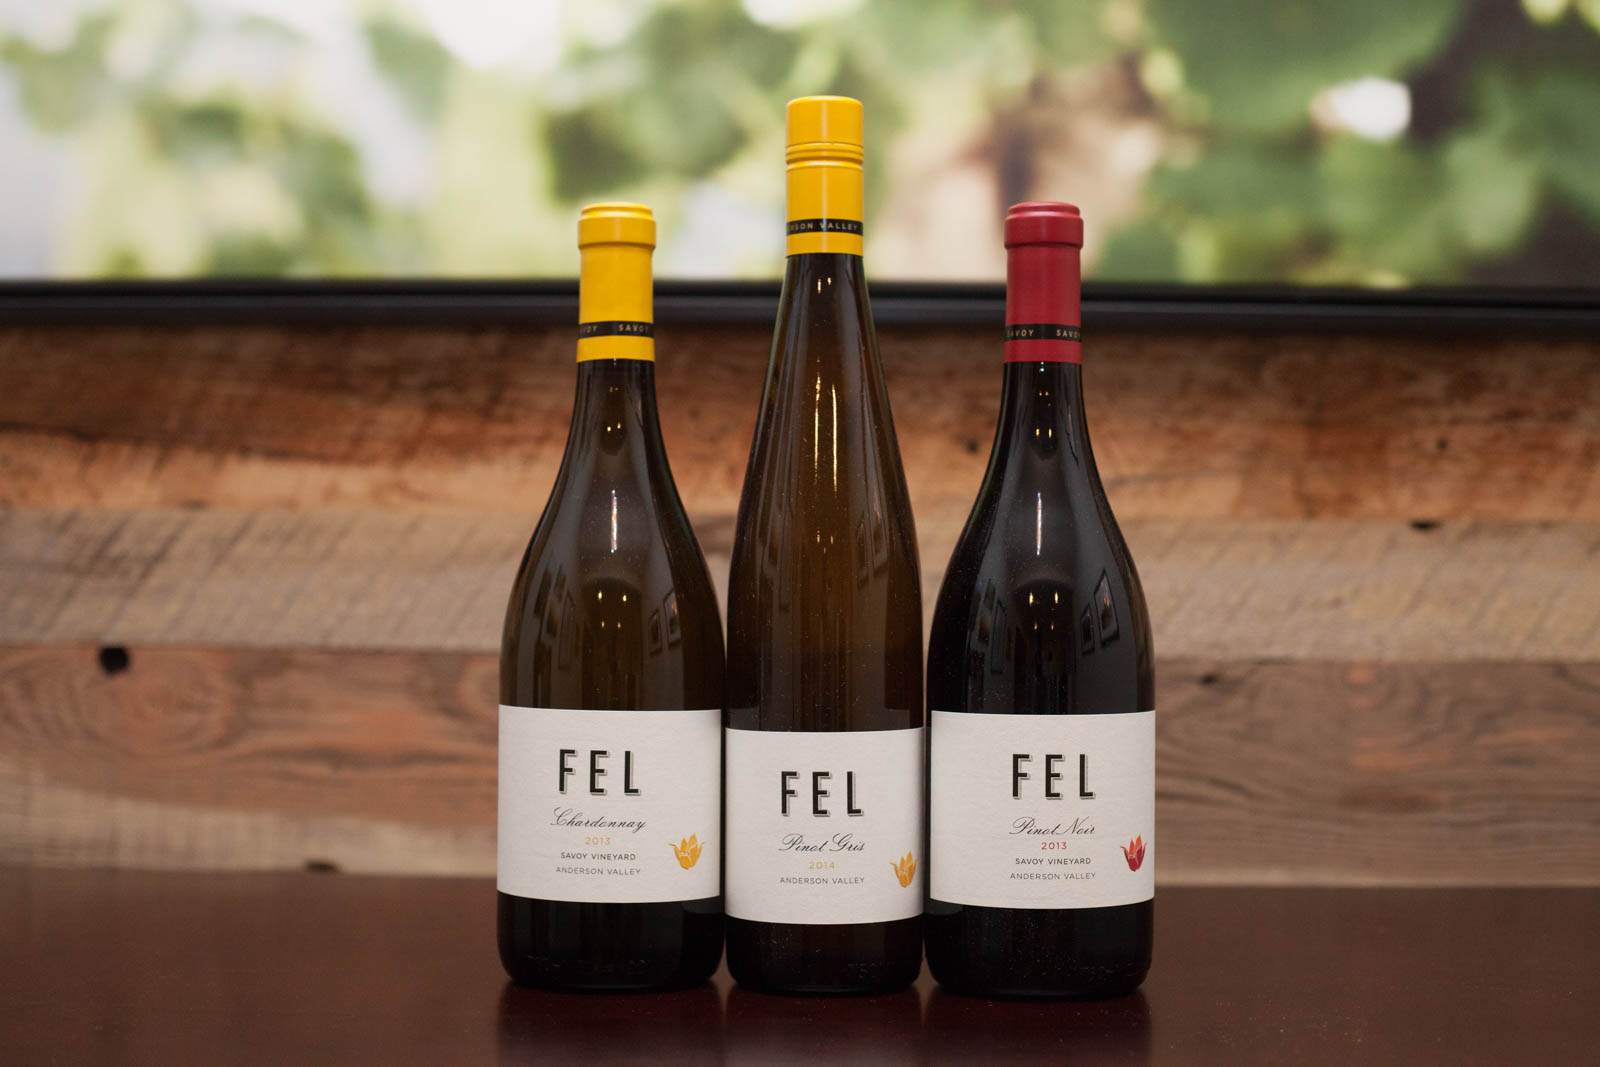 FEL Wines ©Kevin Day/Opening a Bottle